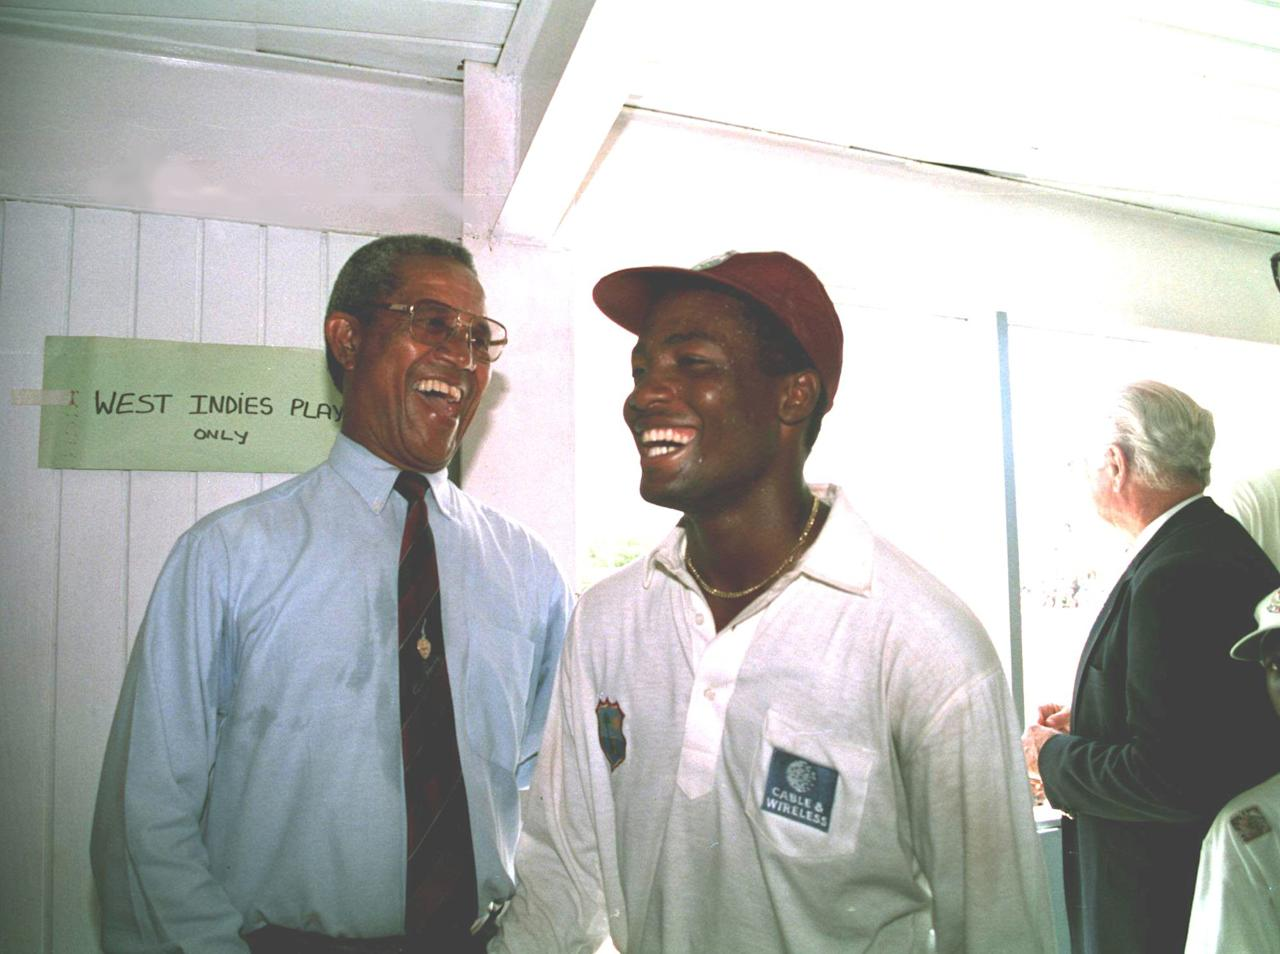 18 APR 1994:  ENGLAND V WEST INDIES, FIFTH TEST, ANTIGUA.  BRIAN LARA CREATES CRICKET HISTORY BY BEATING SIR GARFIELD SOBERS TEST INNINGS RECORD OF 365 WITH A HOOK OFF CHRIS LEWIS FOR FOUR  AT THE RECREATION GROUND, ST JOHNS. SIR GARY SOBERS AND BRIAN LARA TOGETHER IN THE WEST INDIES DRESSING ROOM.   Mandatory Credit: Ben Radford/ALLSPORT